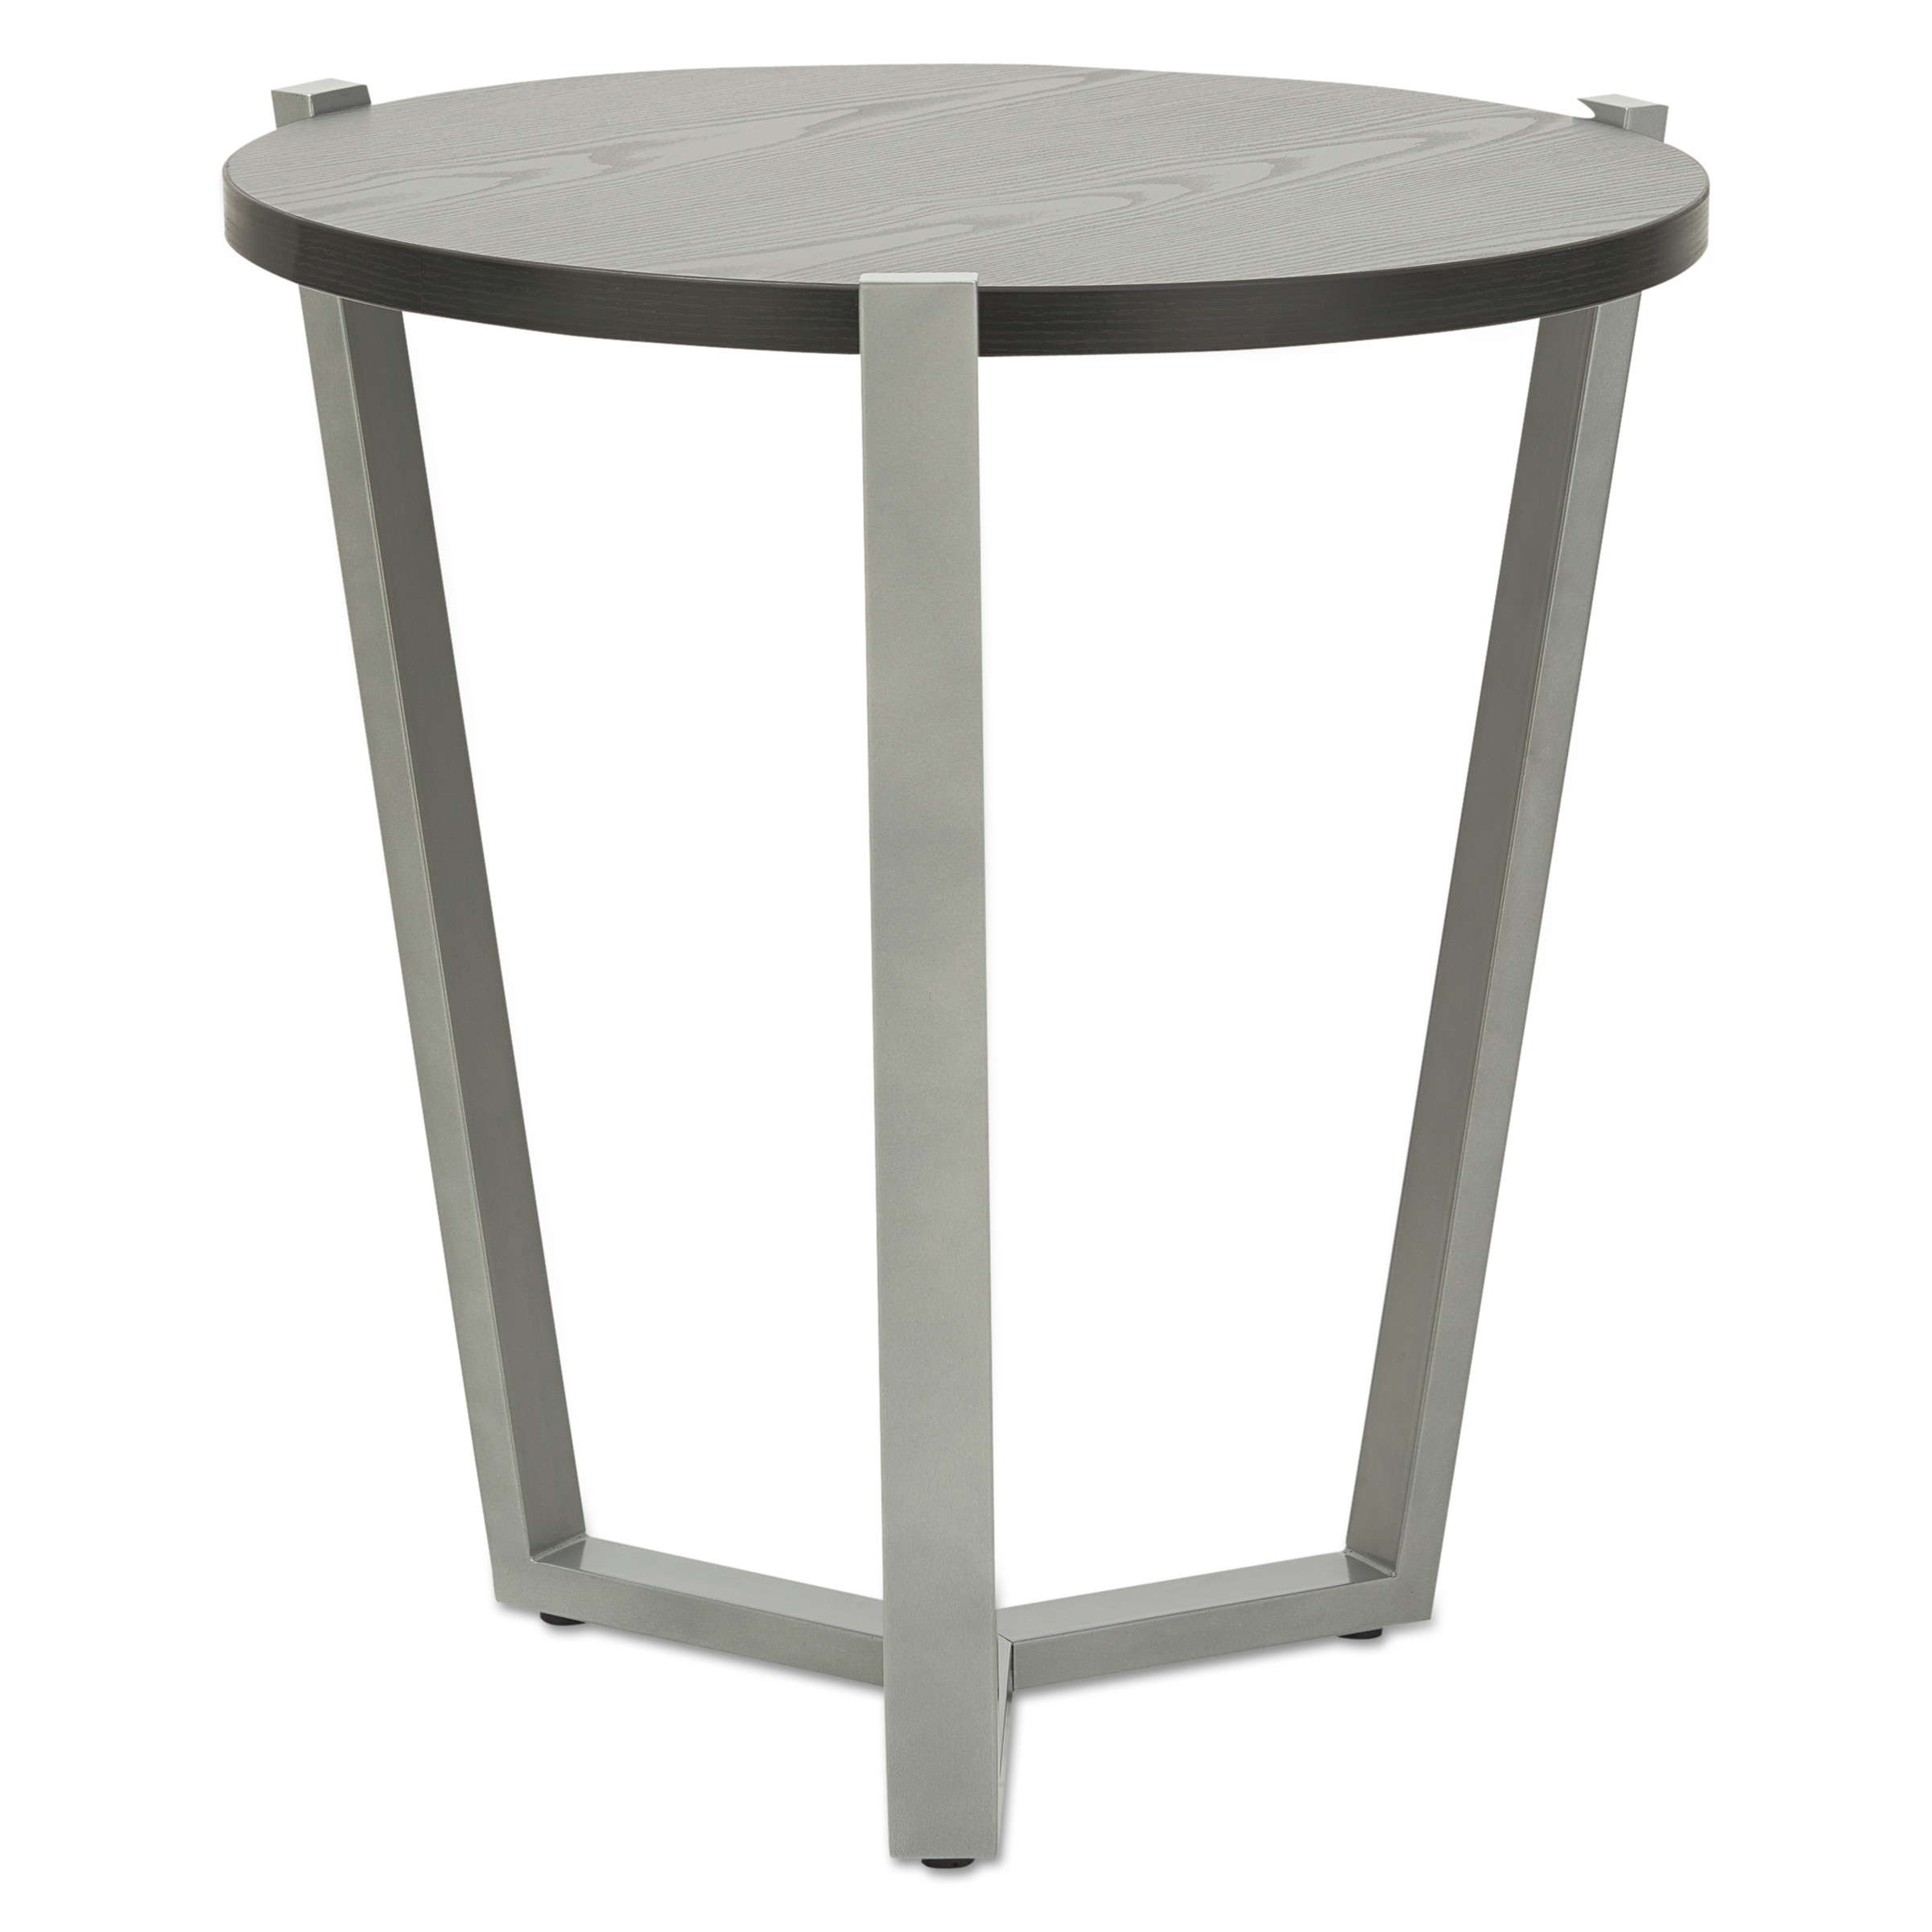 Charmant Alera Round Occasional Corner Table, 21 1/4 Dia X 22 3/4h